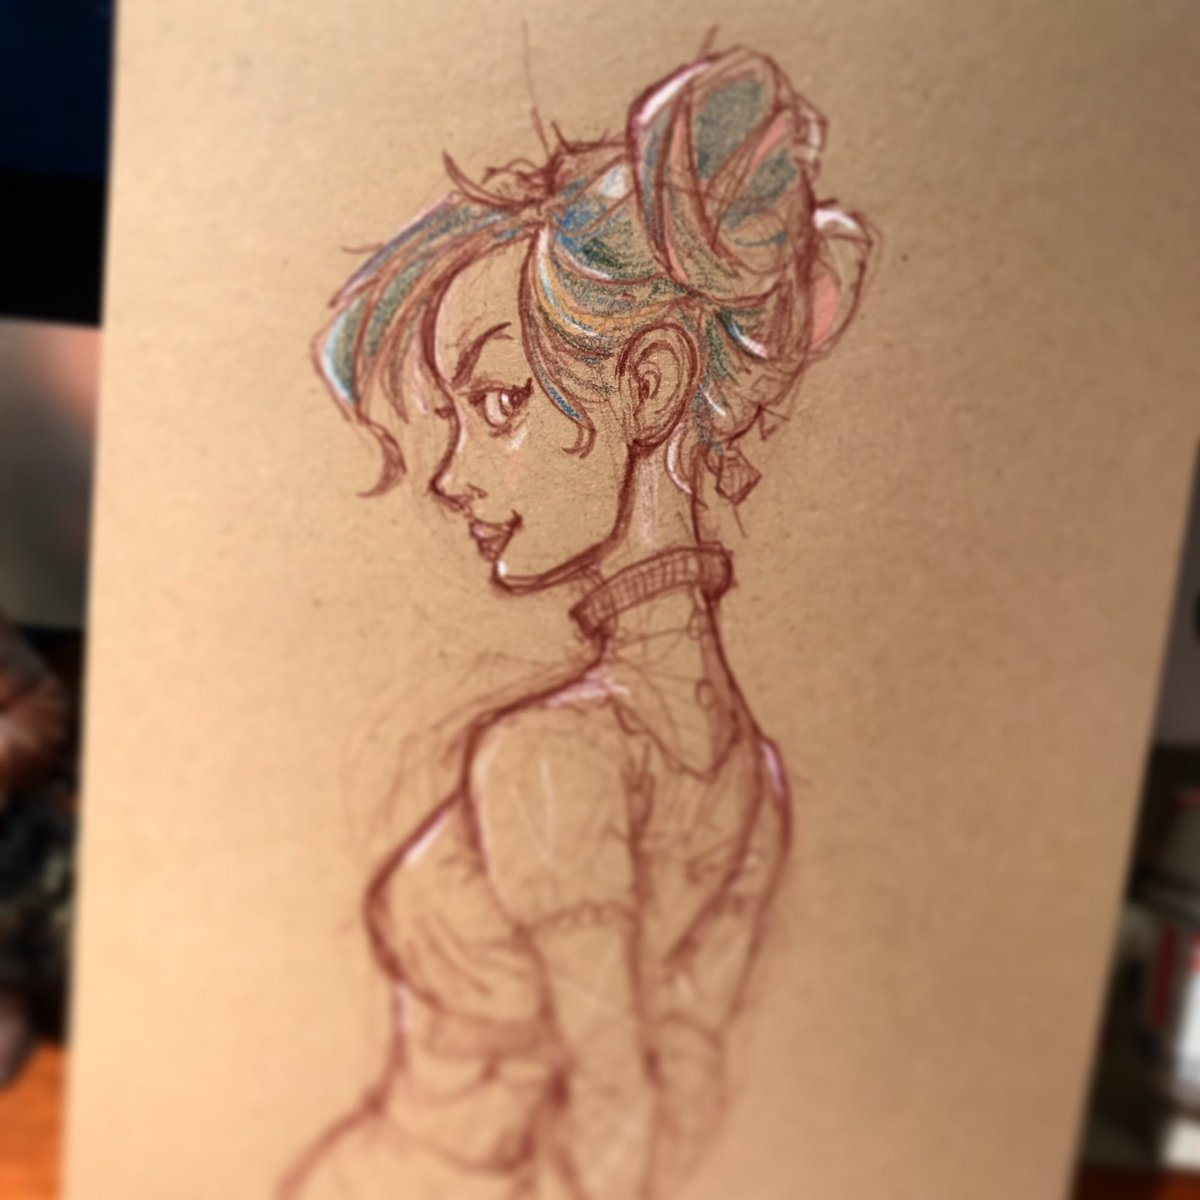 Sunday morning #sketch time #steampunk #victorian #profile #drawing #illustration #doodlebags #nashville #art<br>http://pic.twitter.com/rVgJeuoeoN